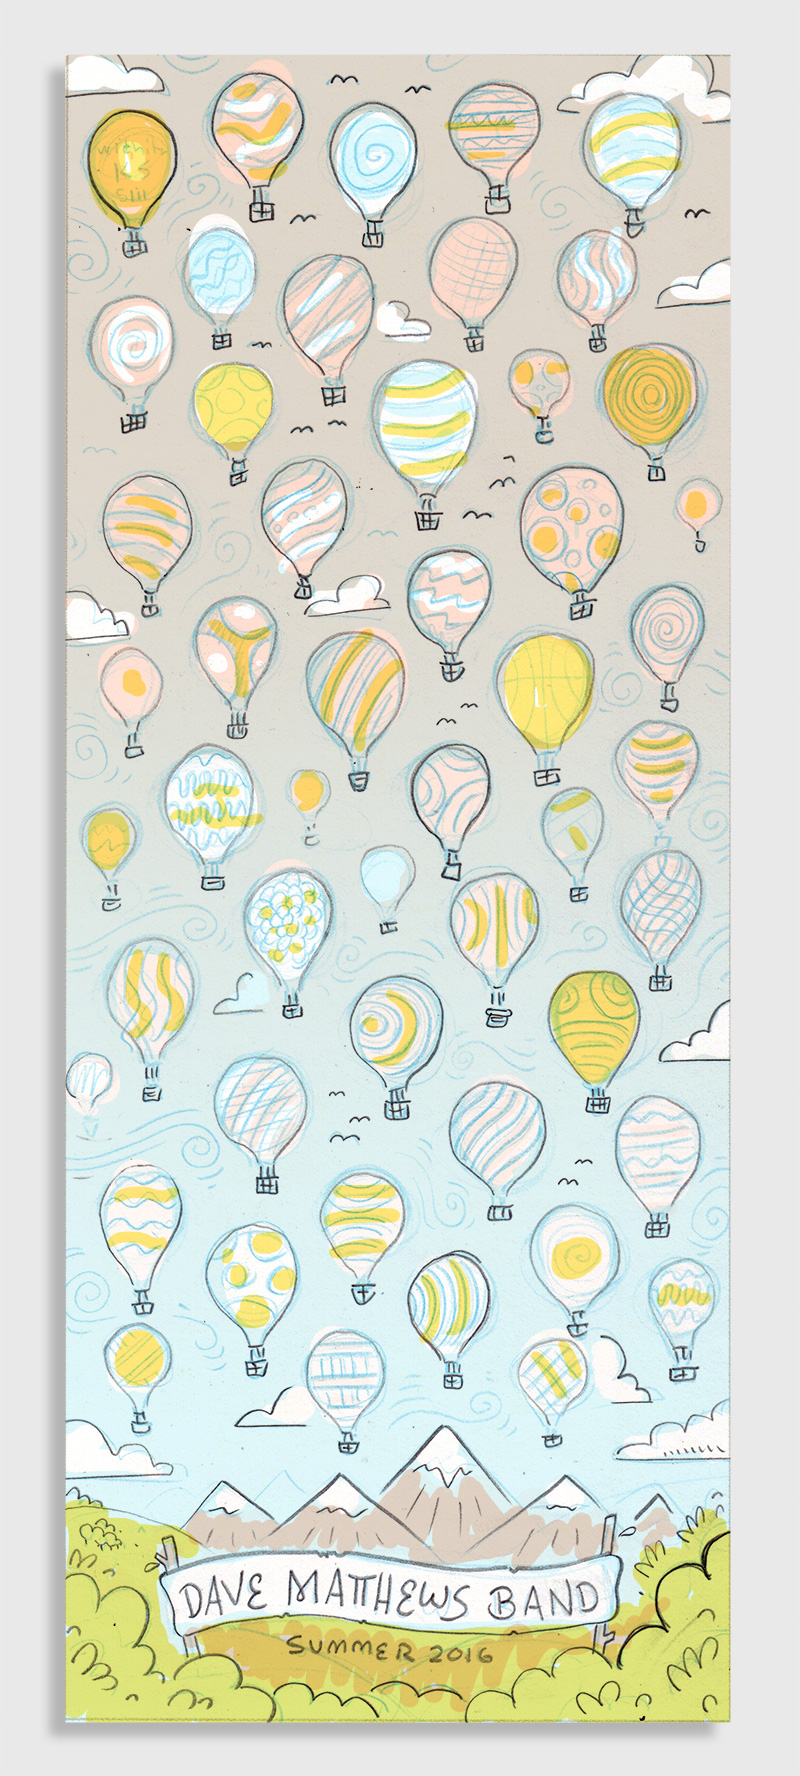 This one would be a cool nontraditional format - a tall skinny print depicting a hot air balloon rally. Each balloon would have a tour date on it and they would all have a variety of patterns & colors on them.